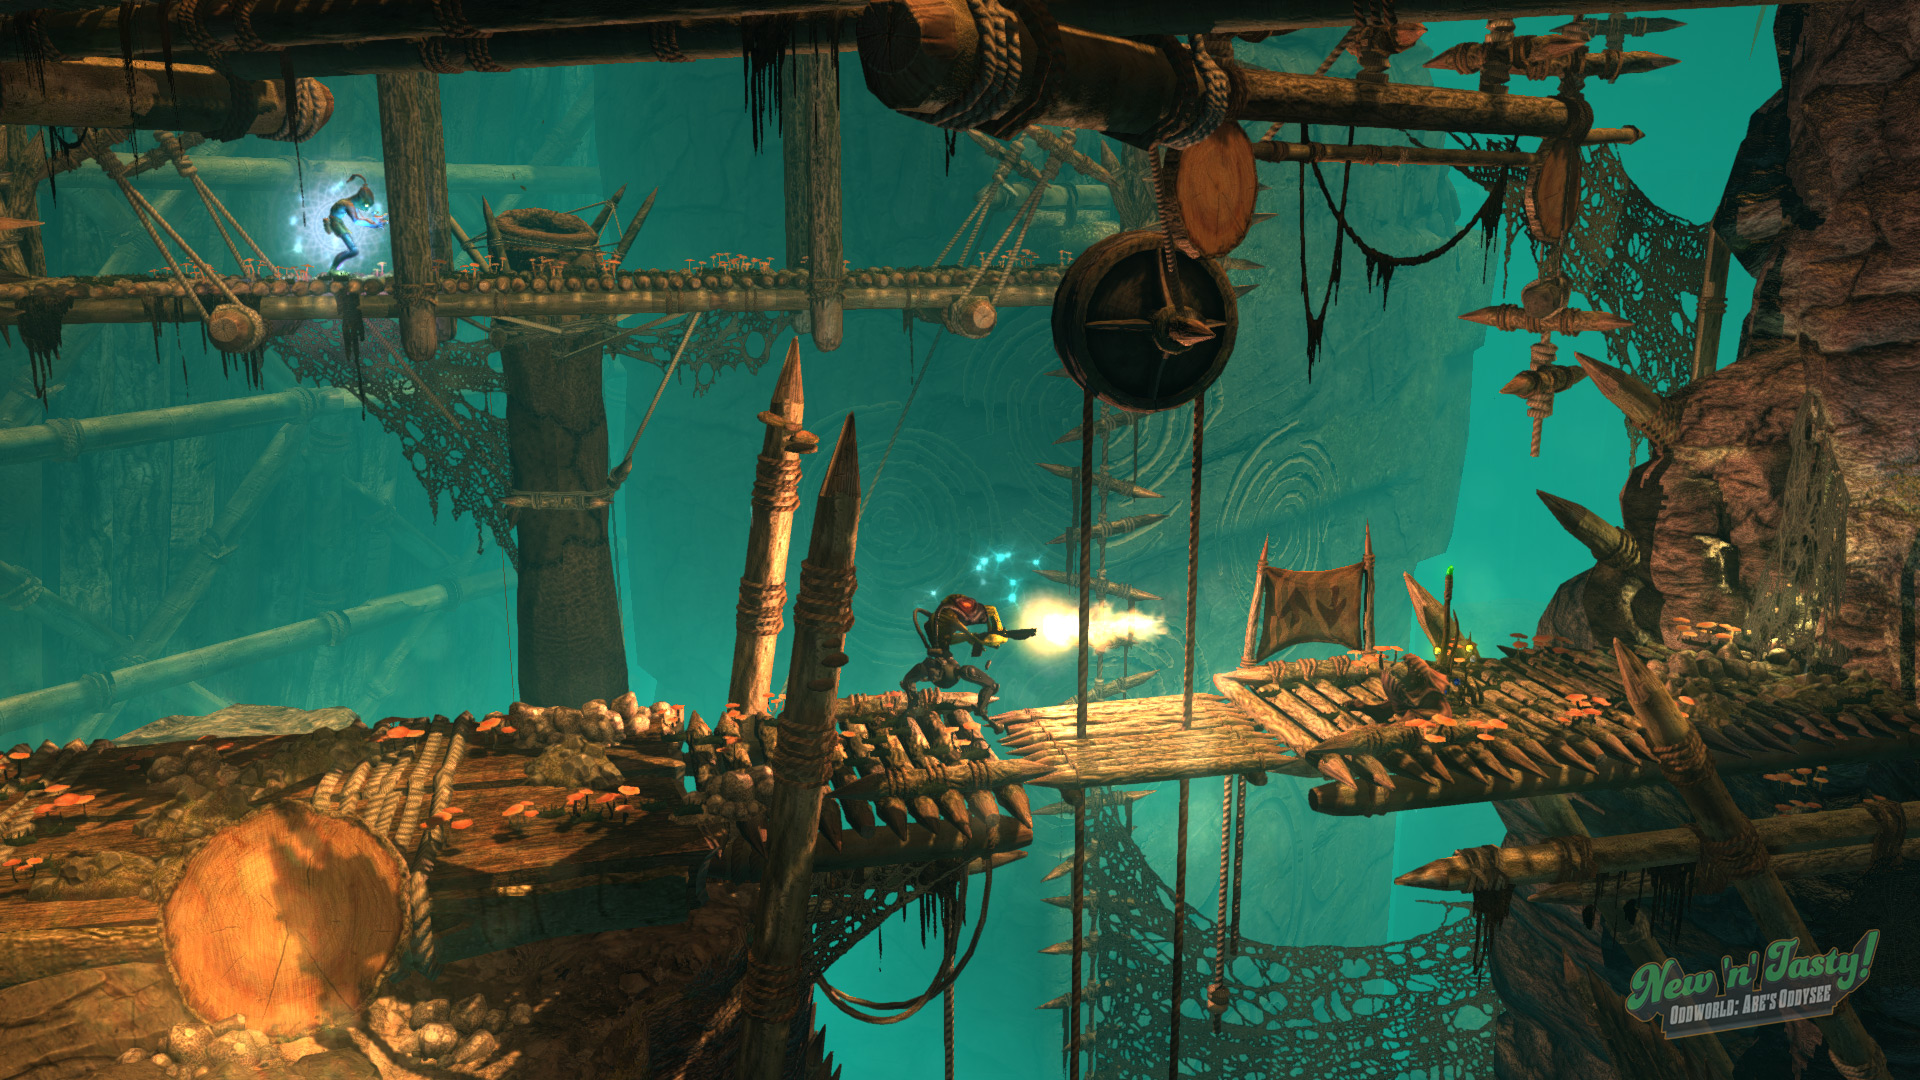 Today's free Epic game is Oddworld: New 'n' Tasty screenshot